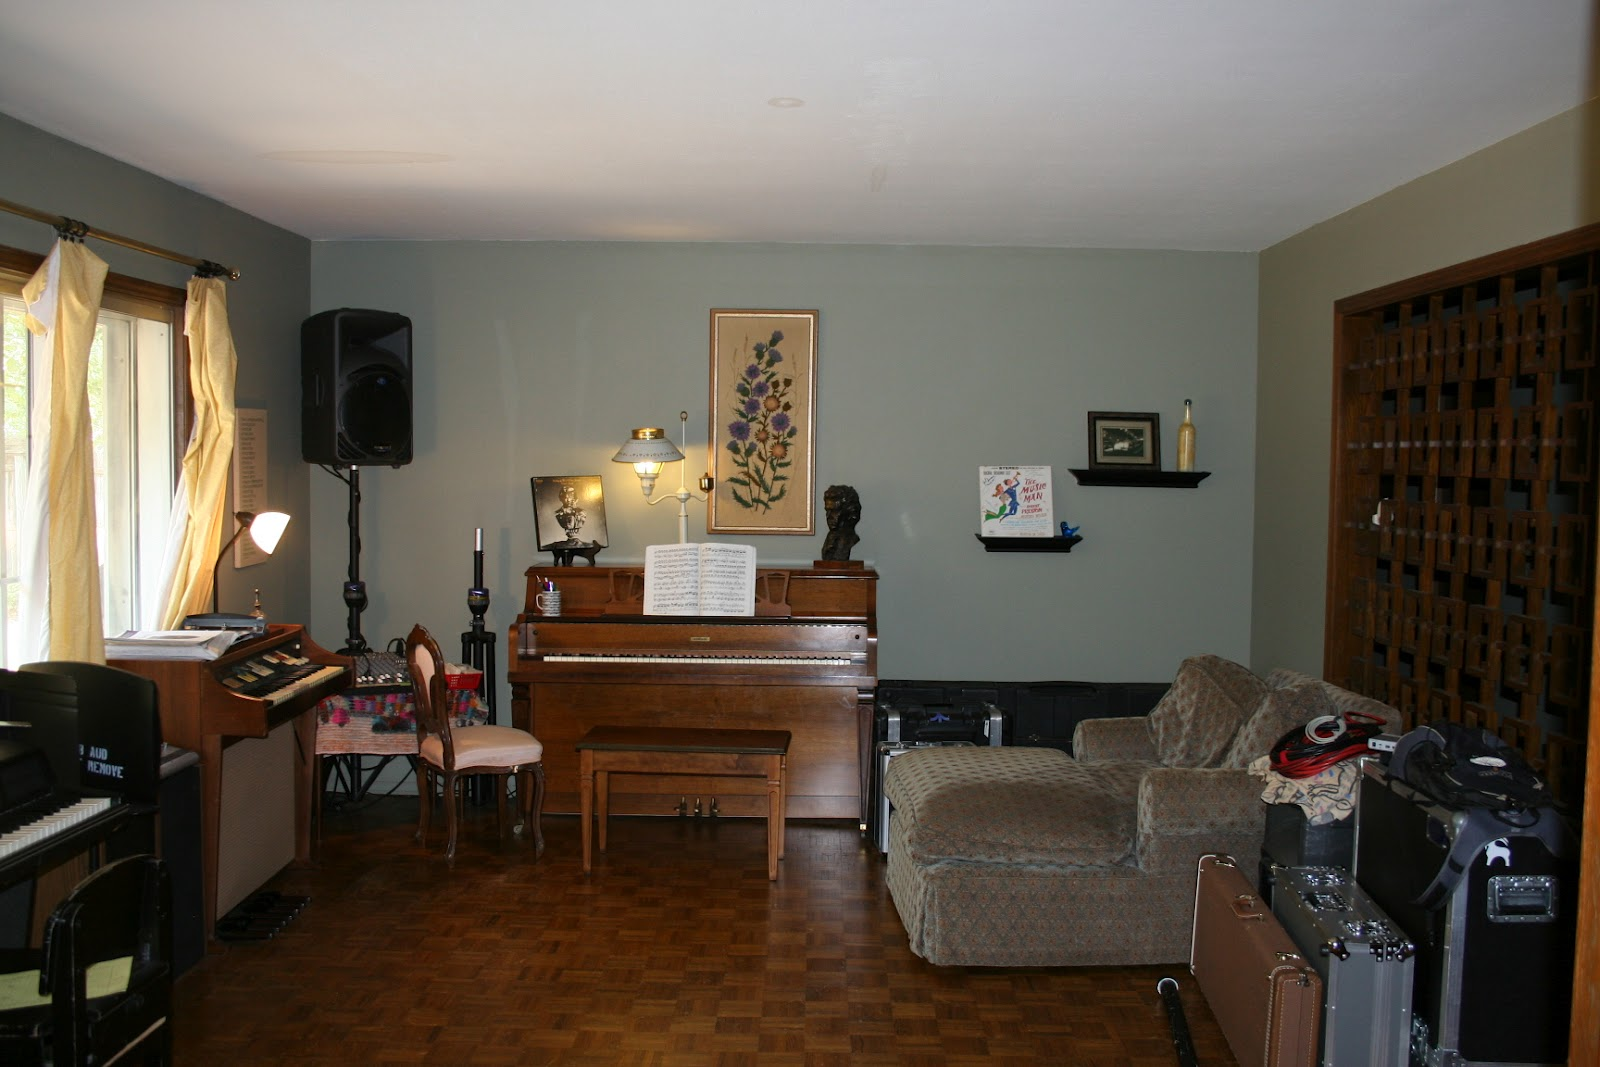 My Devising Music Room  No More Piano Lessons In The Dark. Kitchen Designers Jobs. Small House Kitchen Designs. Small Kitchen Designs. Outdoor Kitchens By Design. Best Small Kitchen Designs 2013. Kitchen Design Dubai. Rustic Country Kitchen Designs. Modern White Kitchen Designs